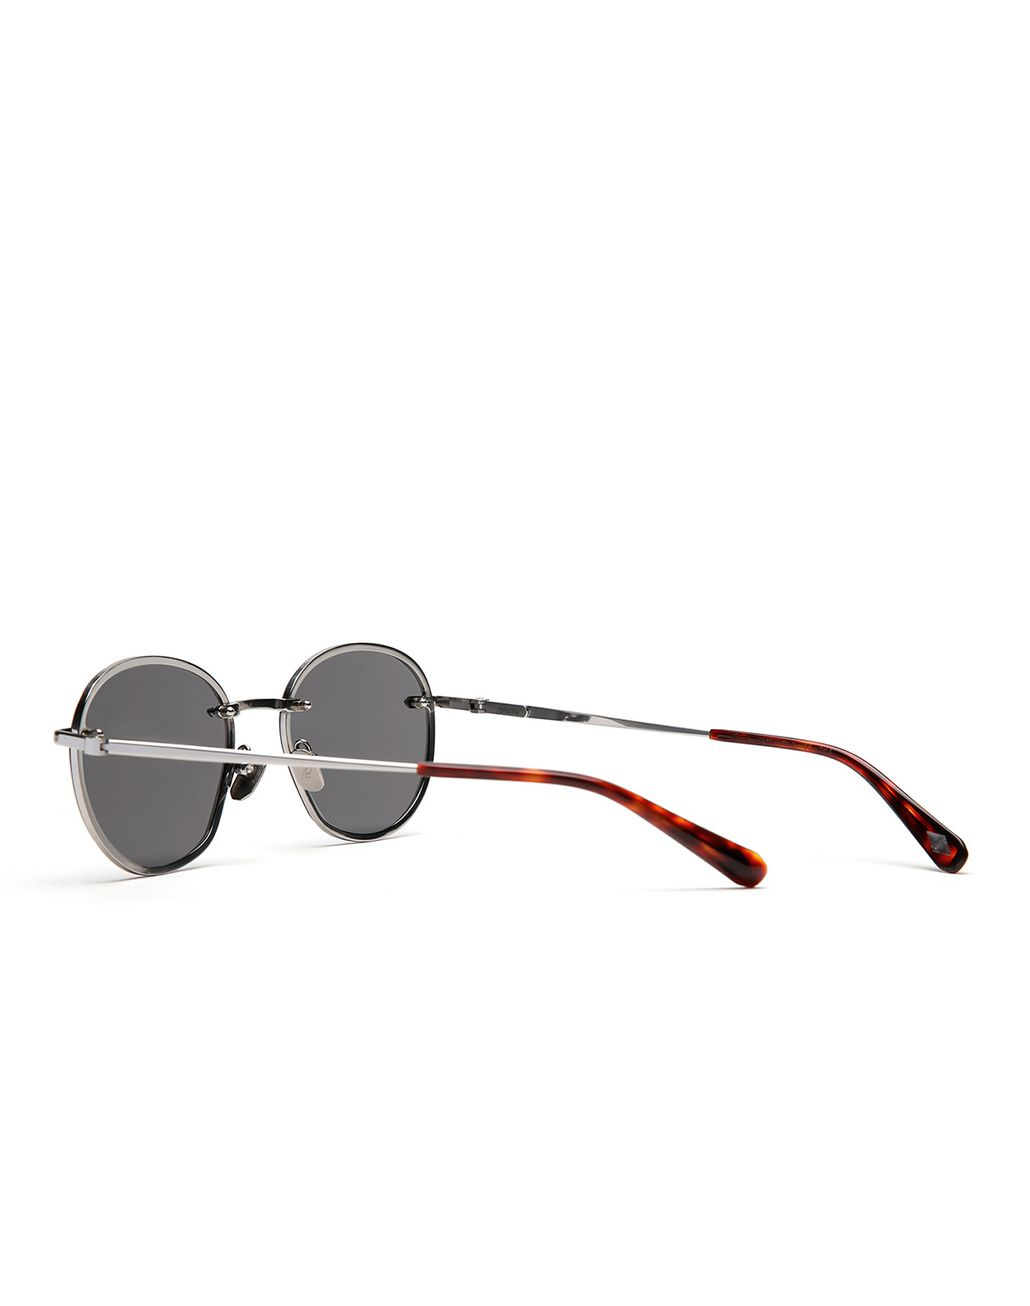 BRIONI Silver Rounded Titanium Sunglasses with Grey Lenses  Sunglasses Man d